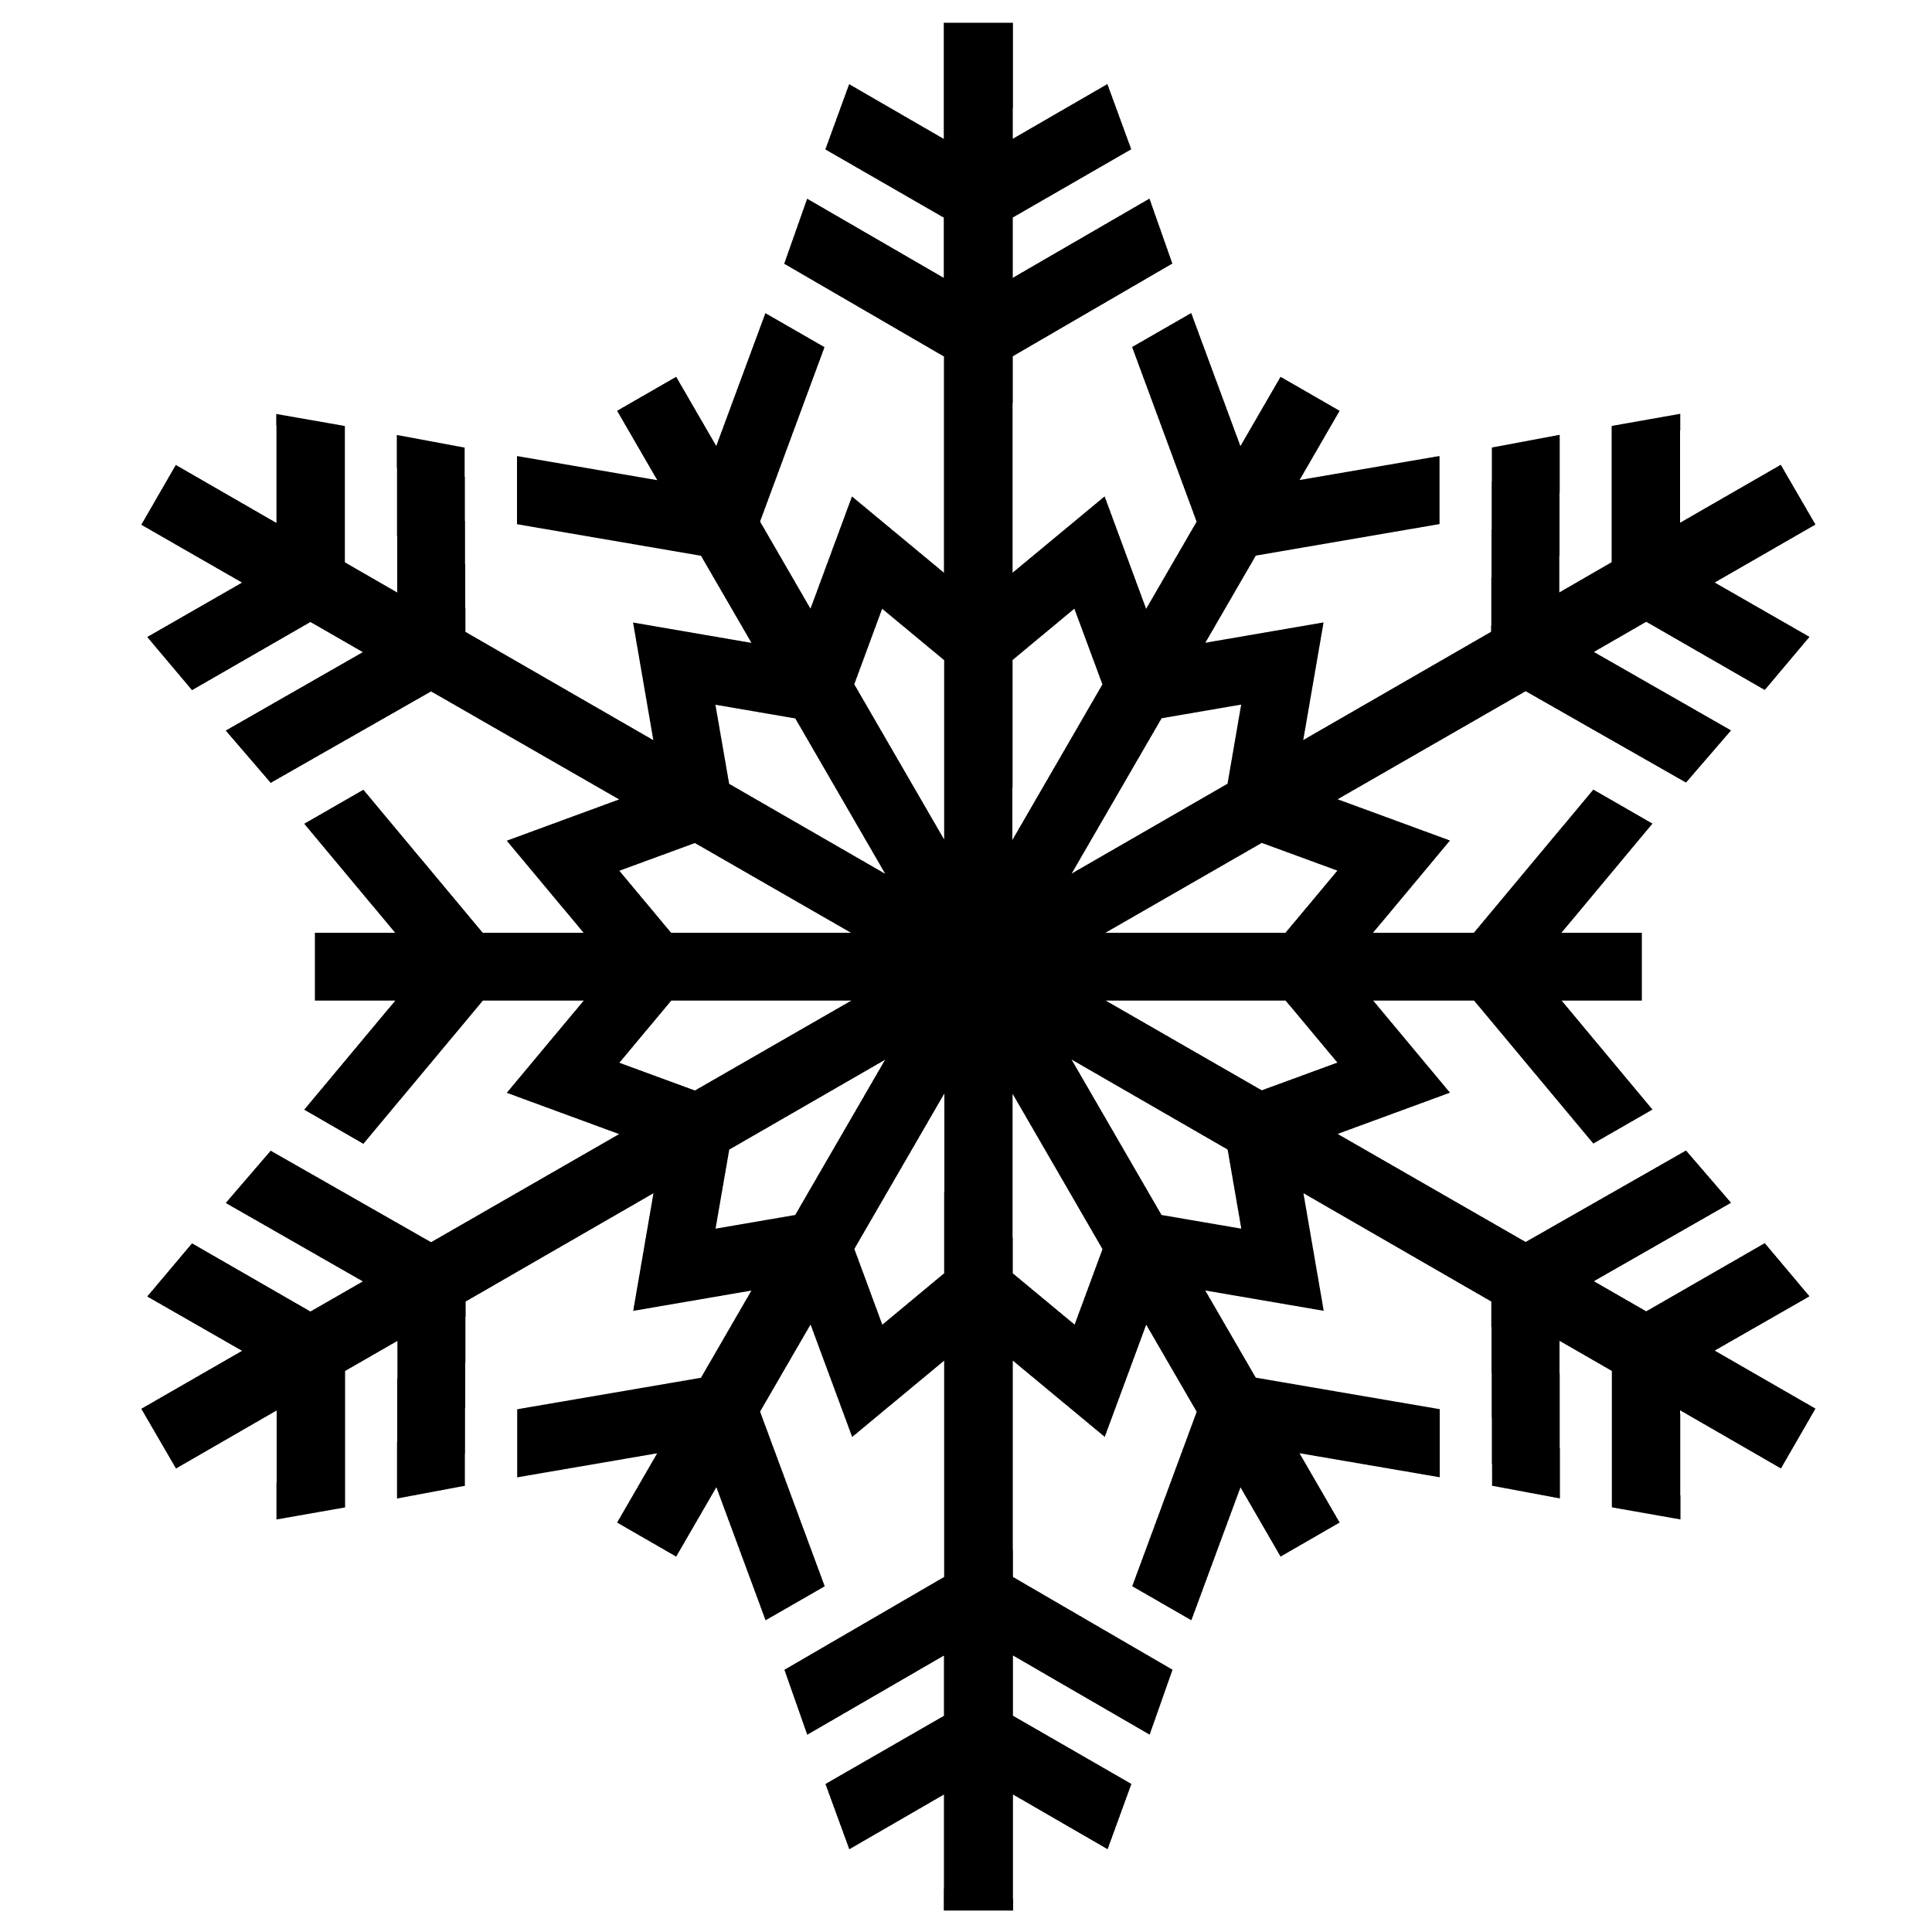 Snowflake silouette clipart graphic stock snowflake - Google Search | Holiday Decorations | Snowflake ... graphic stock